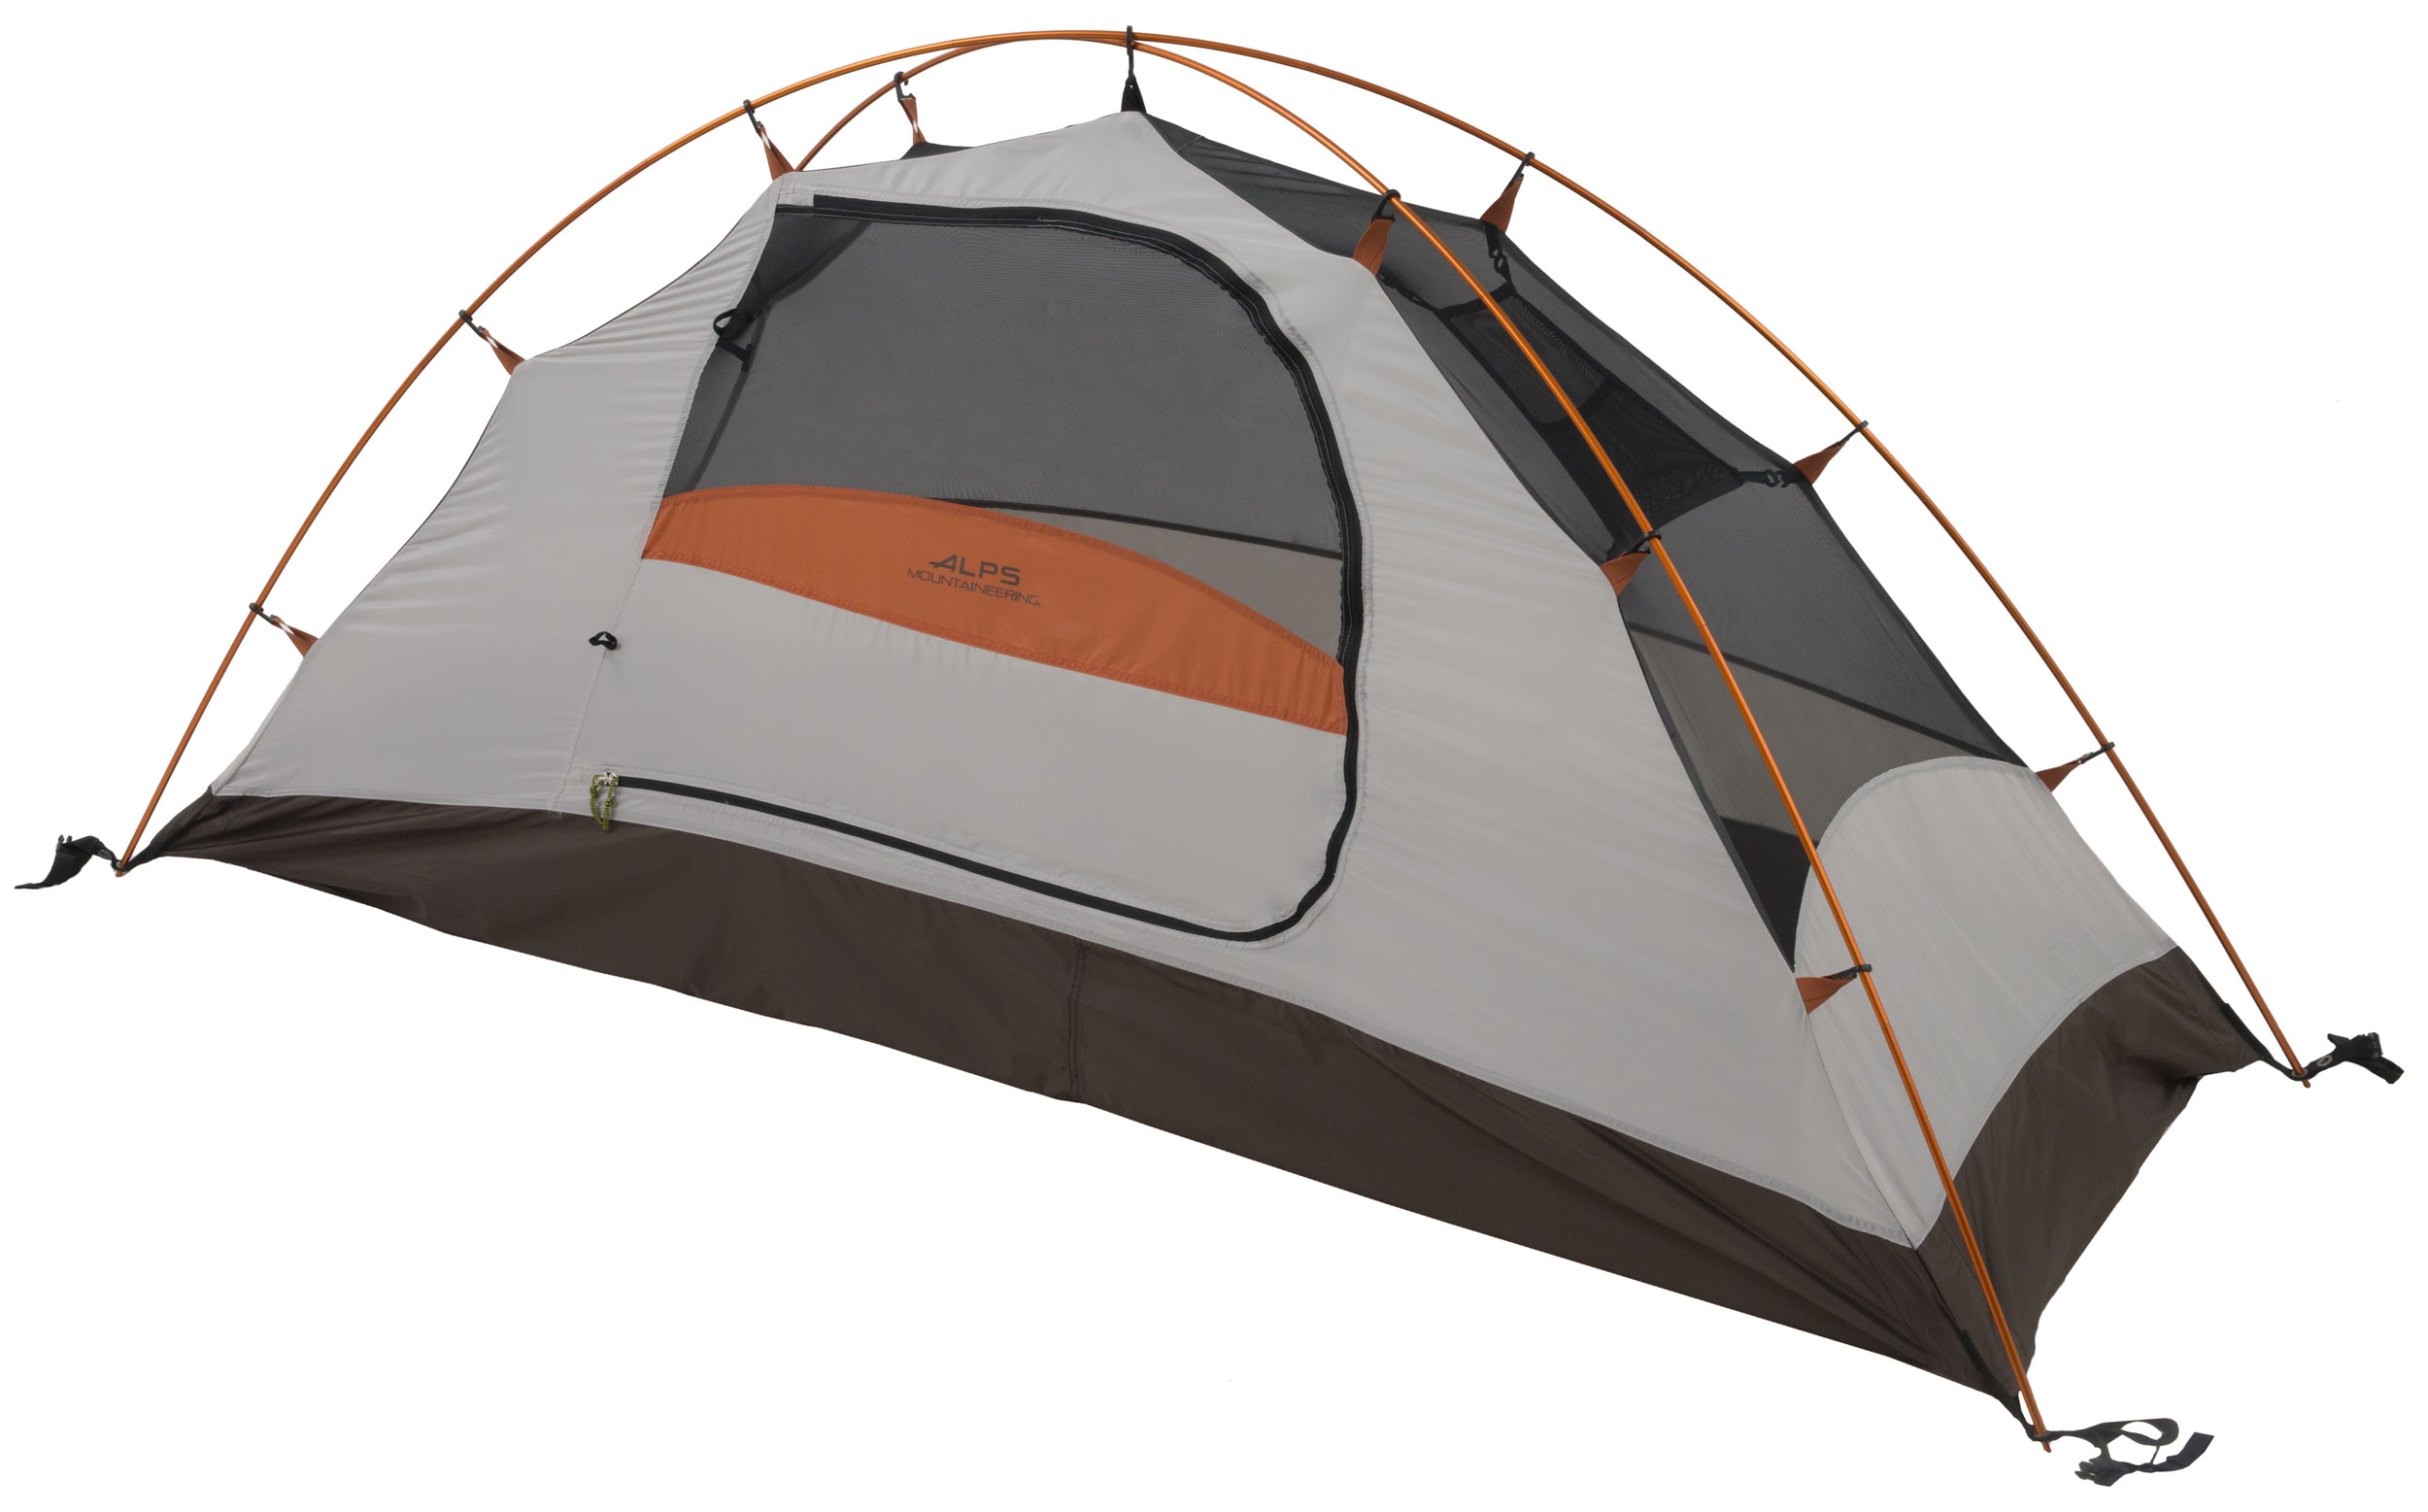 Double Walled Tent: Inner Shell